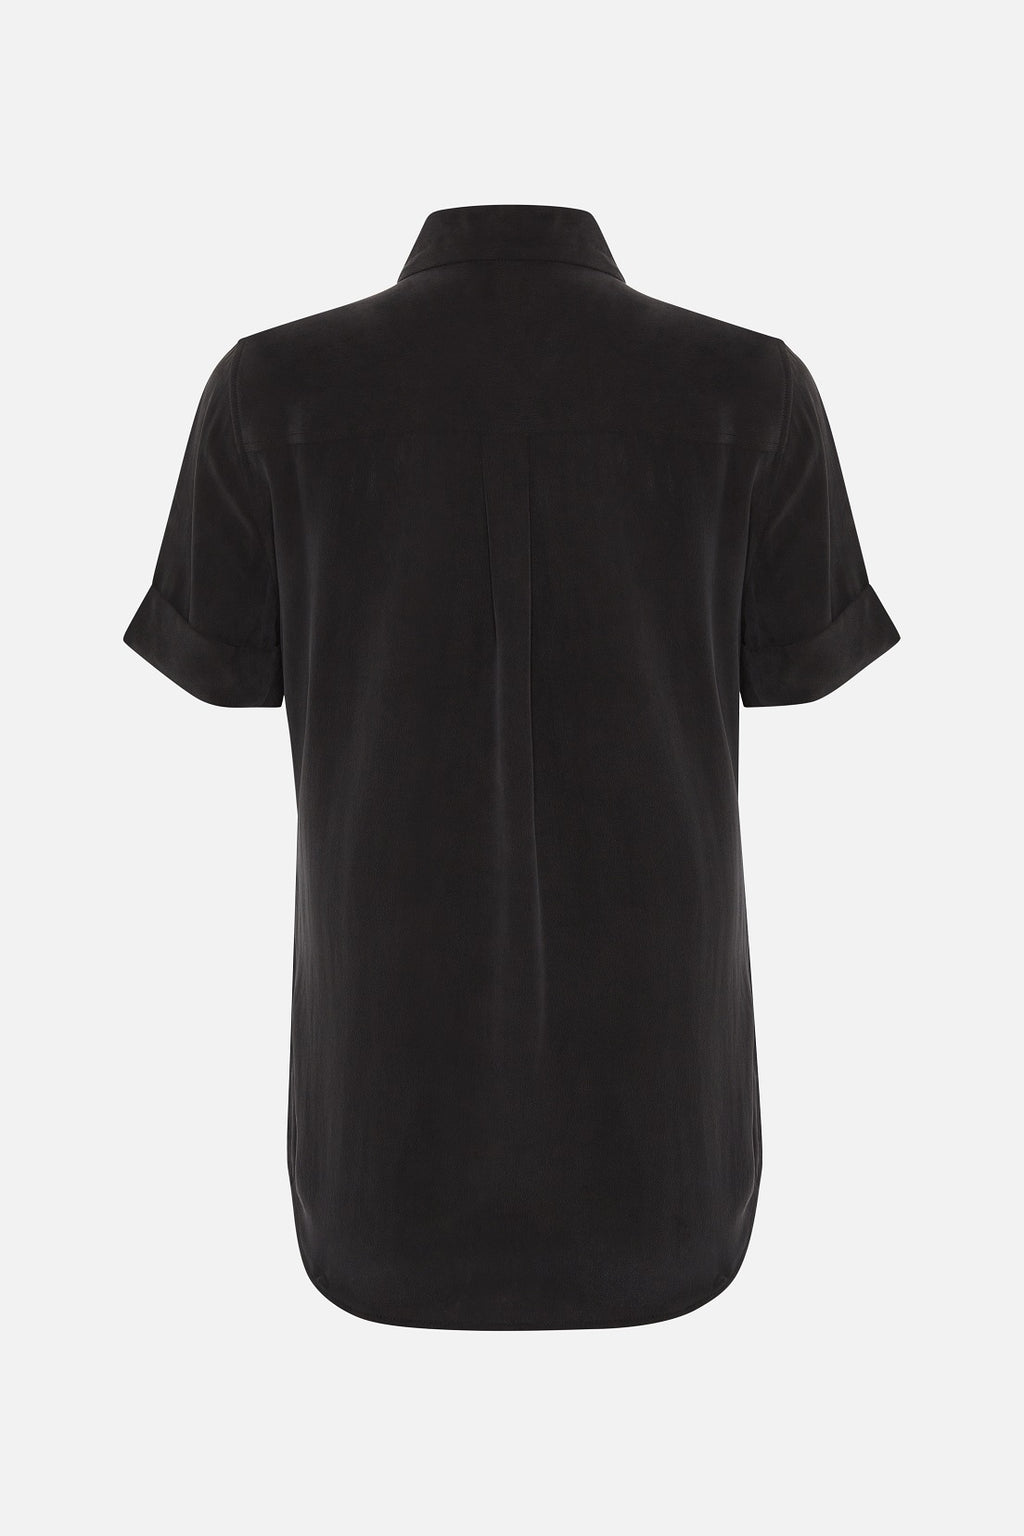 Equipment Signiture Silk Short Sleeve Shirt in Black